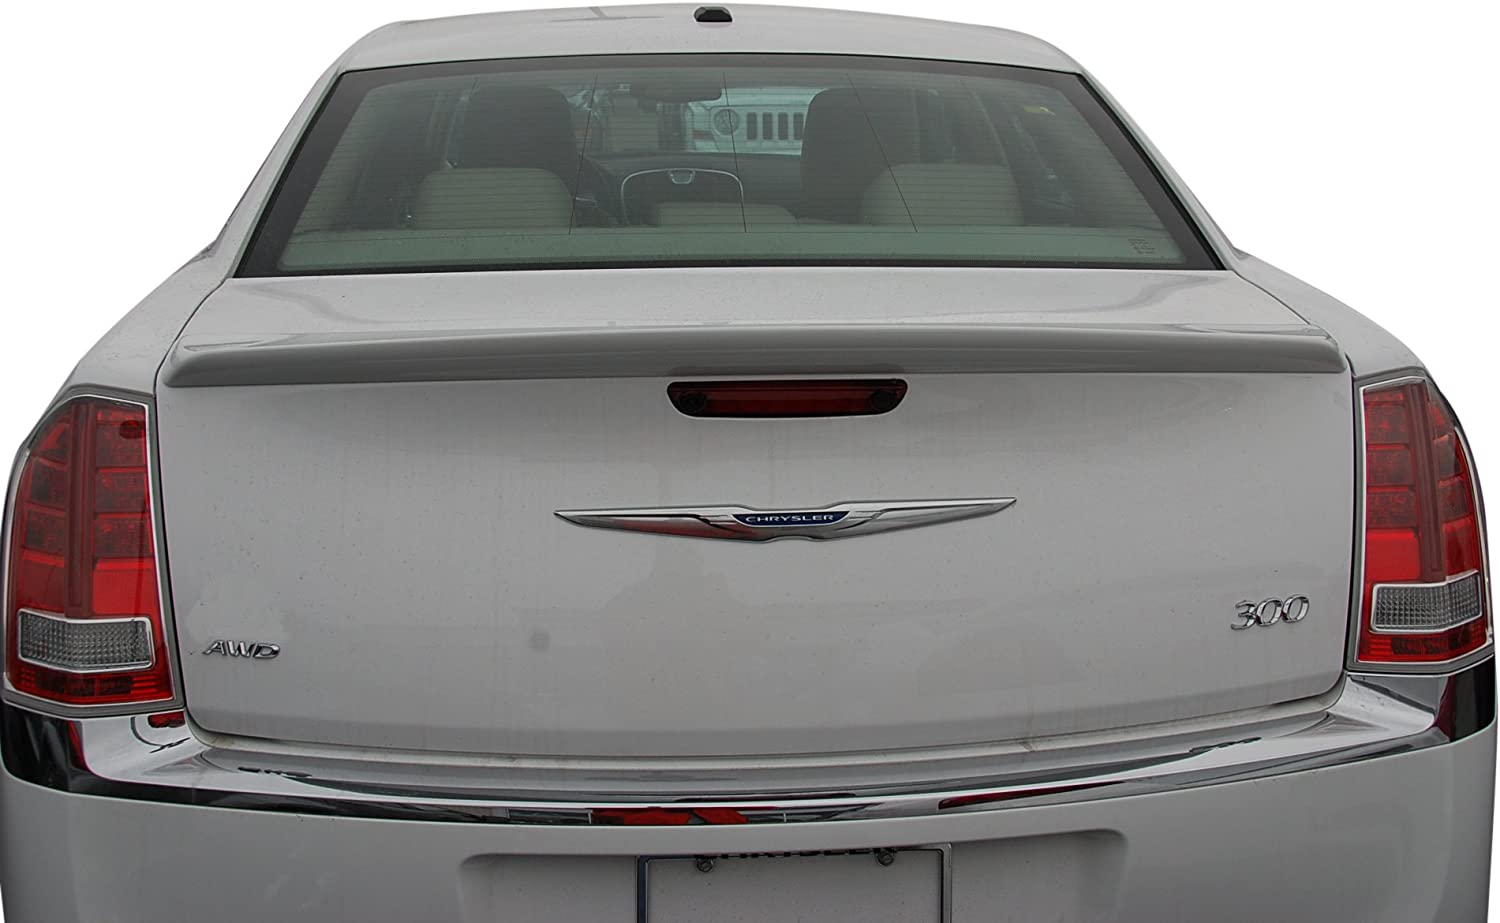 Painted Factory Style Spoiler fits the Chrysler 300 518 PSC with 3M tape included